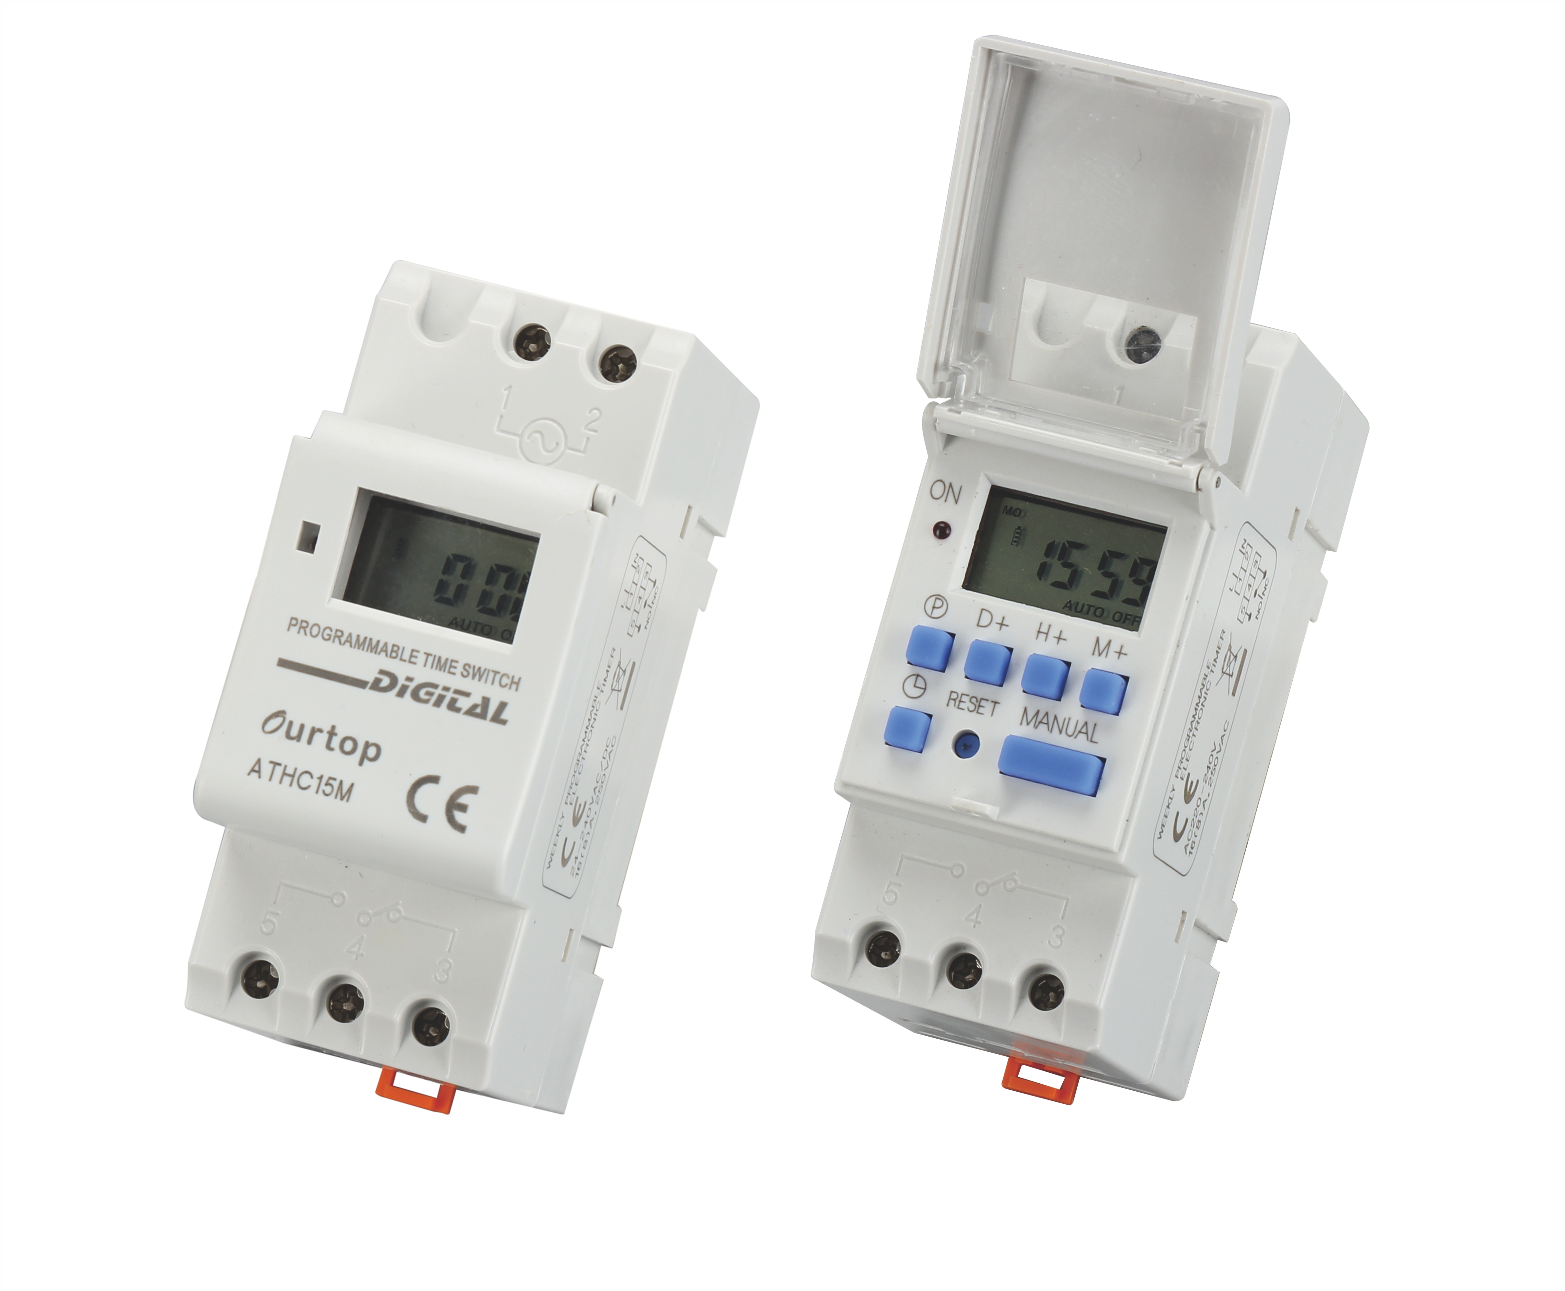 ATHC15M Digital Programmable Time Switch Multi-Voltage